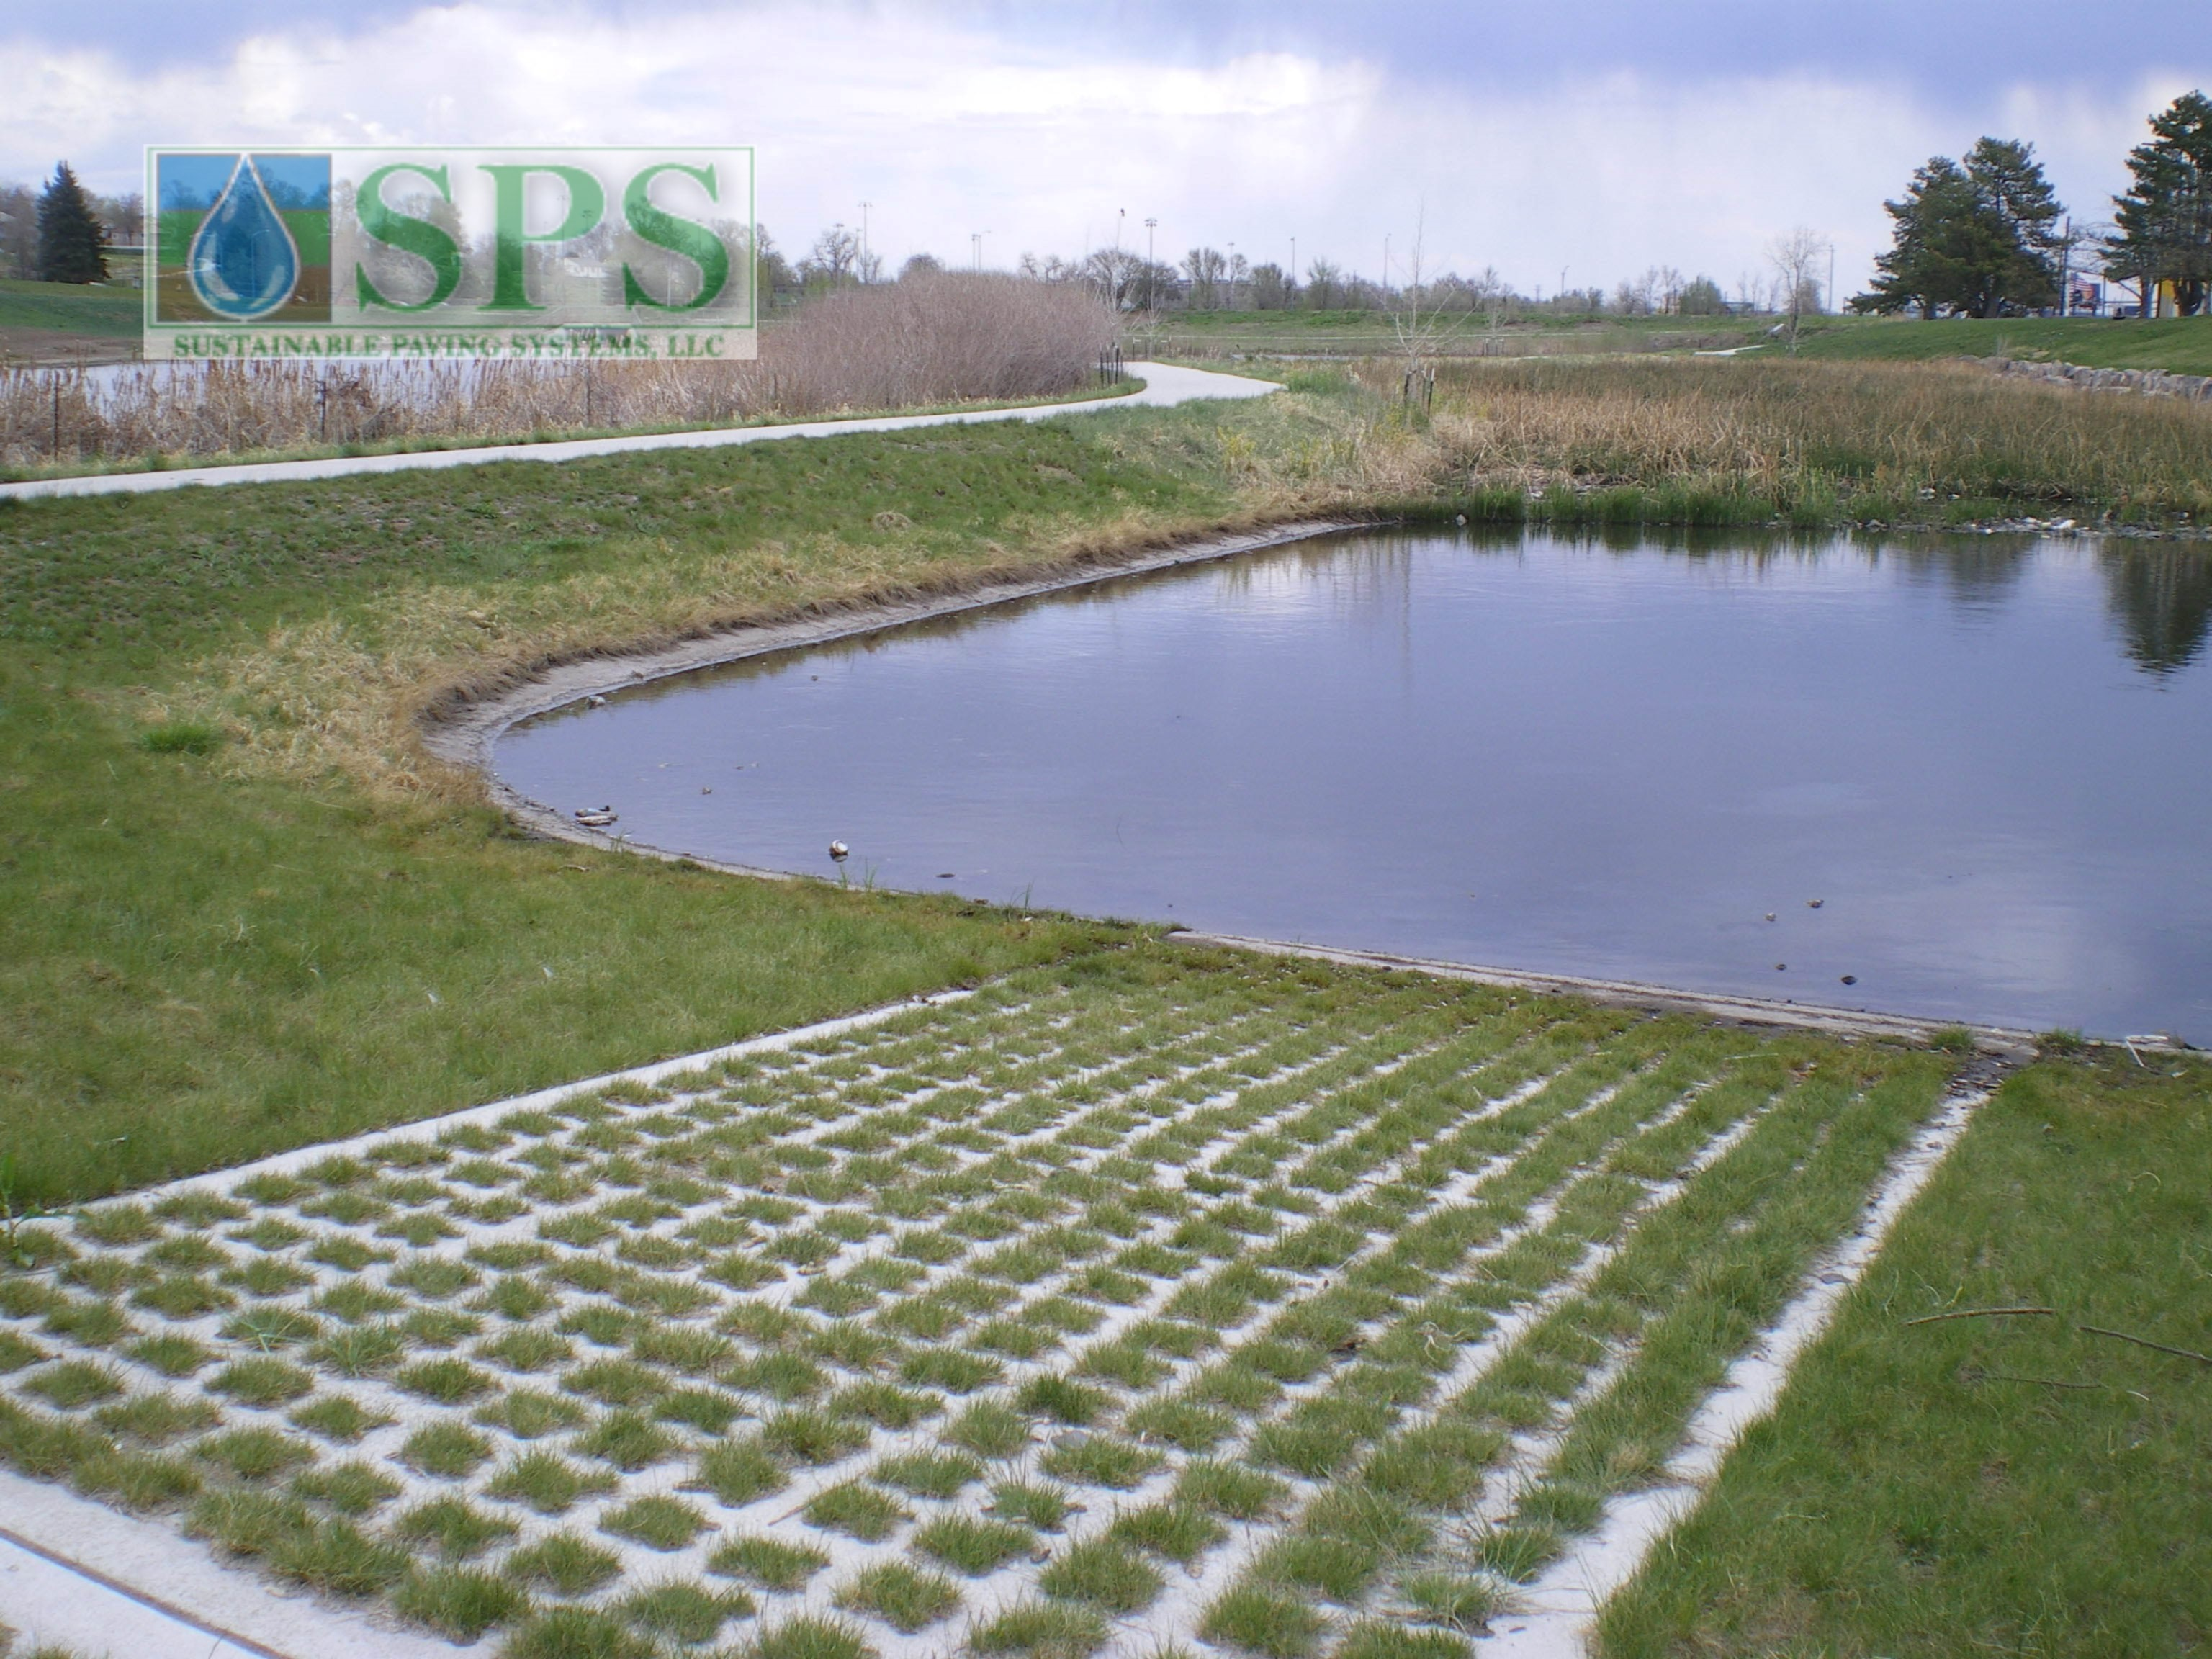 This Grasscrete system allows for flexibility where a structured paving surface is necessary but without compromising the visual appeal of the exterior landscape, and because the concrete system is pervious, the need to control storm water runoff is greatly reduced.